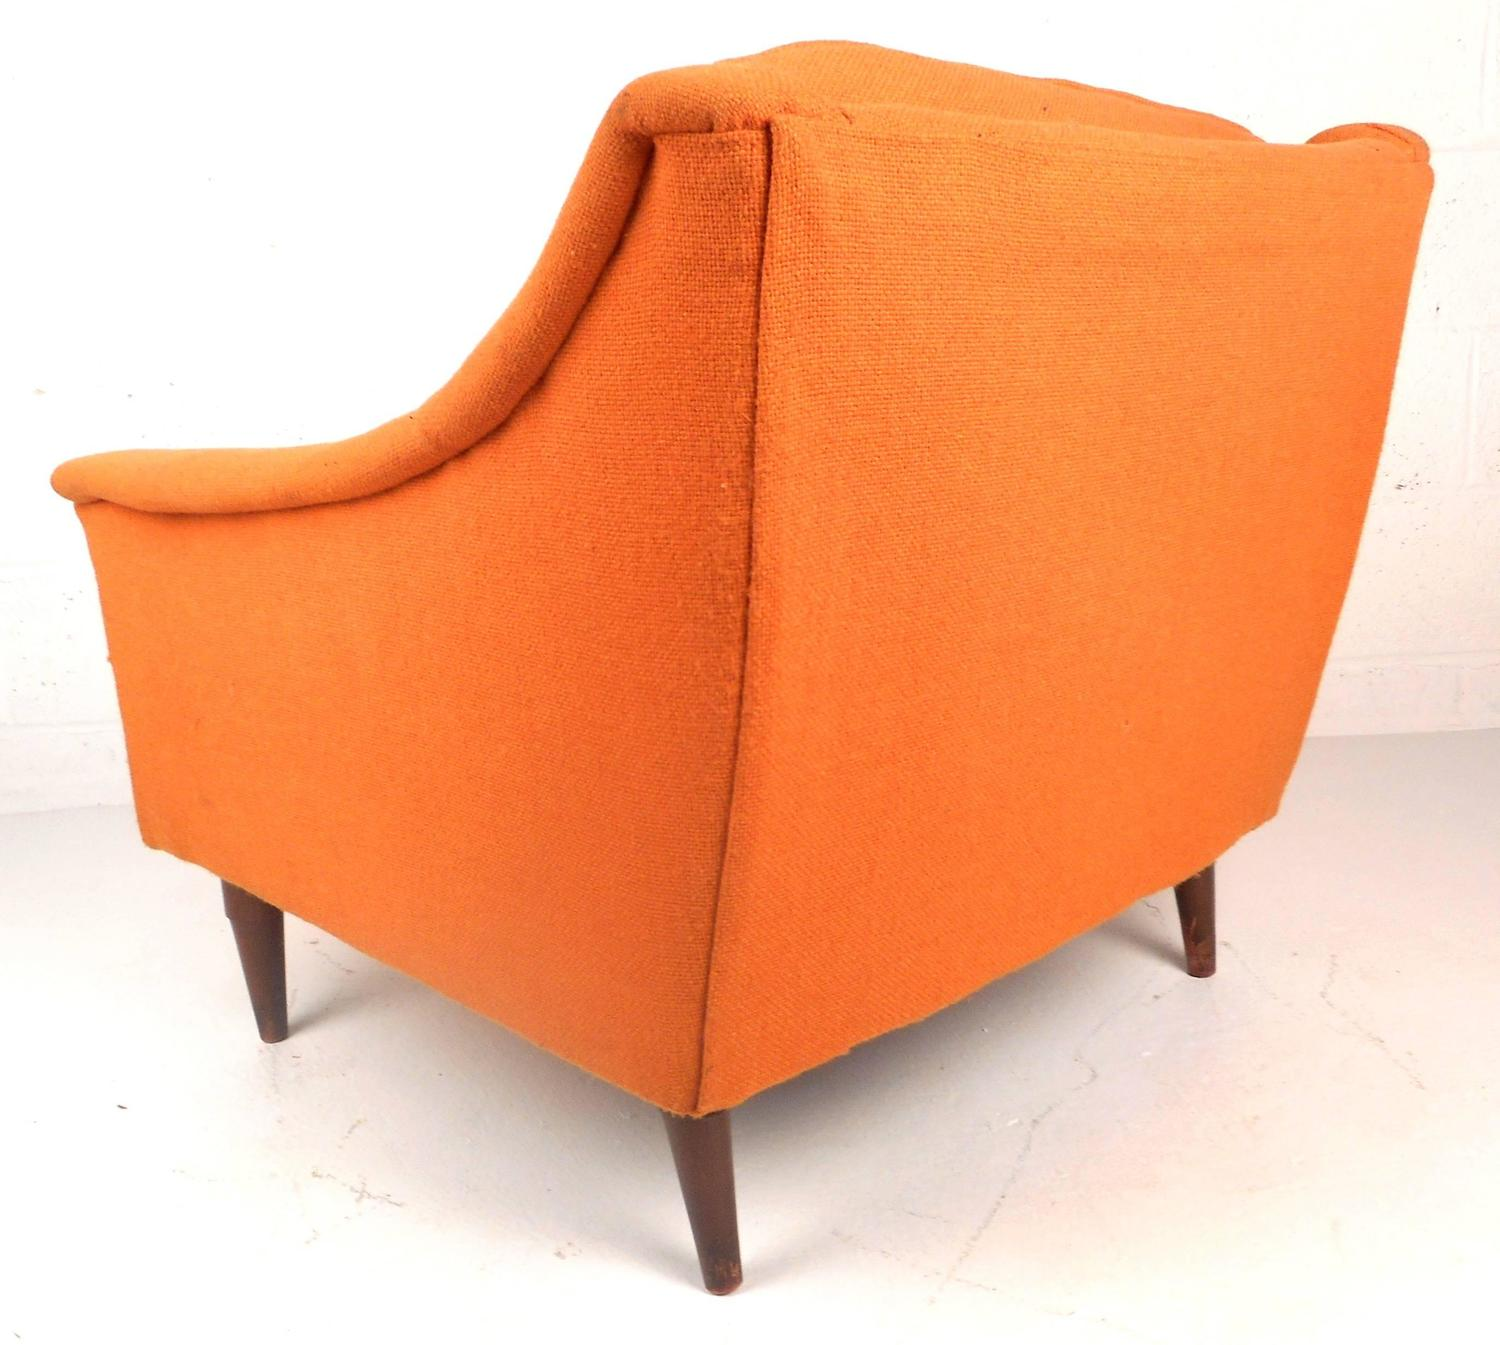 Mid century modern danish lounge chair by selig for sale at 1stdibs - Selig z chair for sale ...